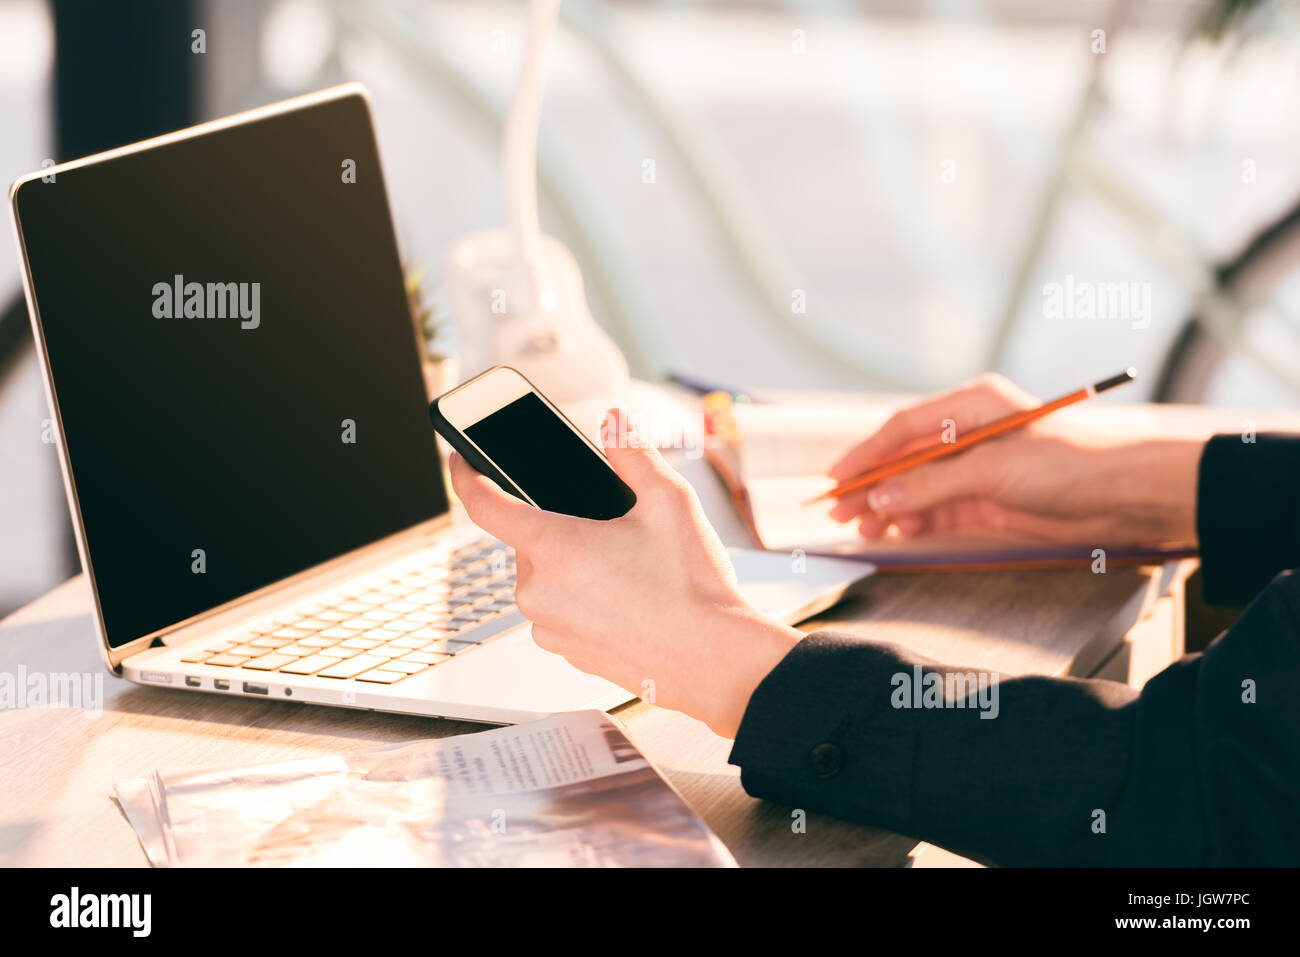 Close-up partial view of businesswoman using laptop and smartphone with blank screens - Stock Image